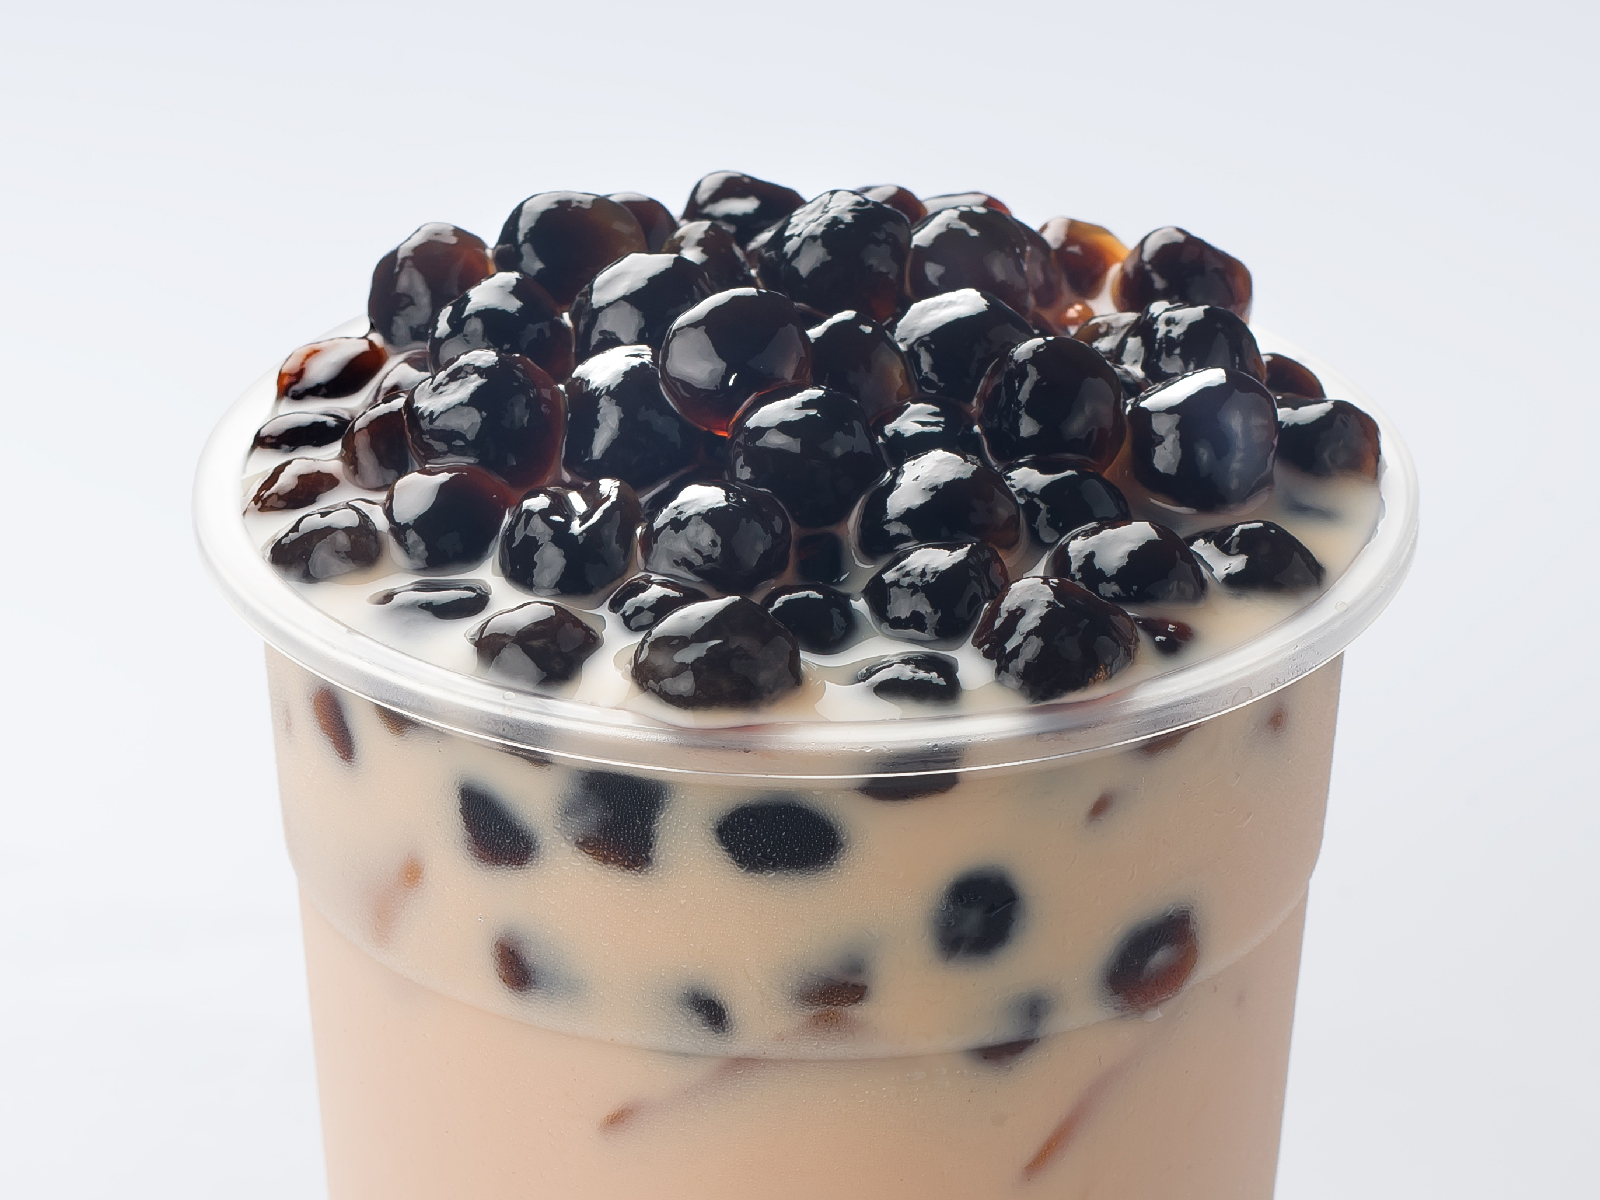 boba-beer-FT-BLOG0719.jpg